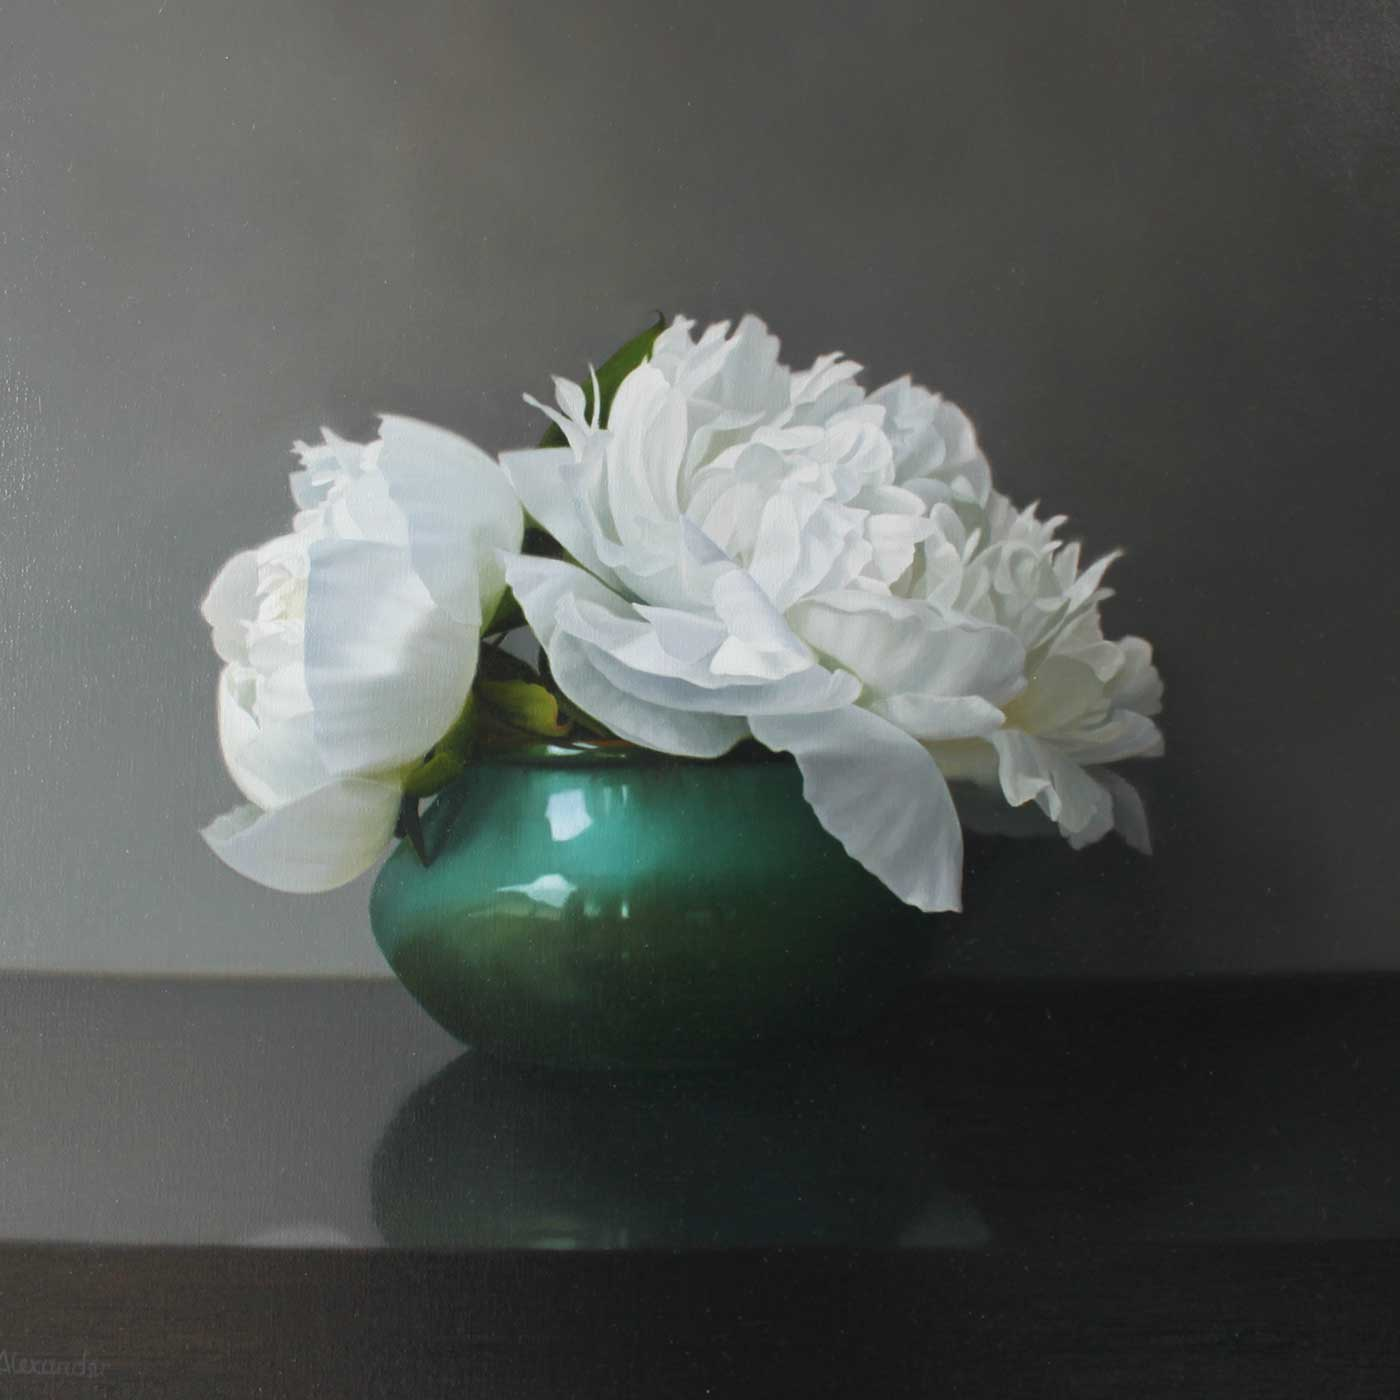 White Peonies in a Green Bowl